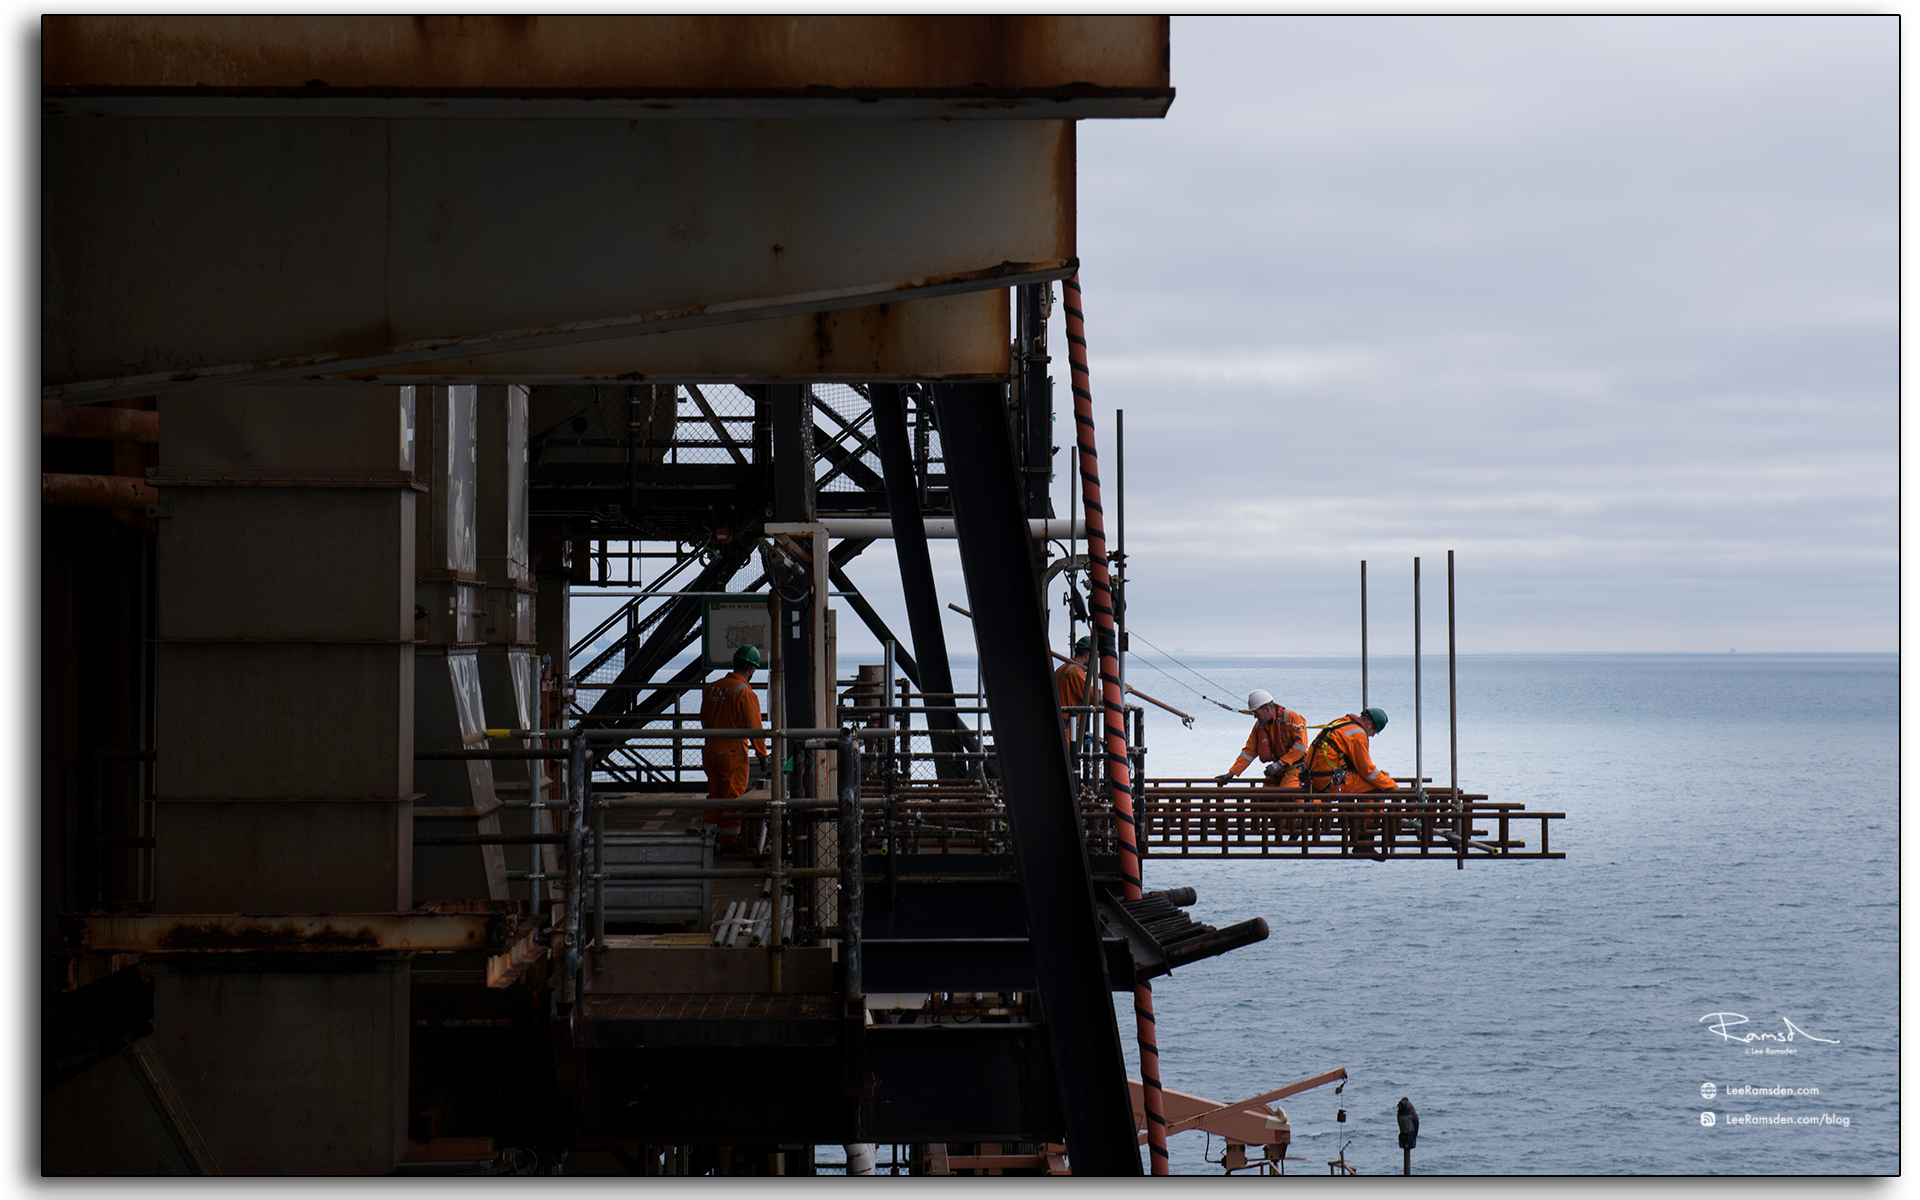 Blog, Scaffolders, working at height, contruction, decommissioning, outbaord, scaffolding, BP Miller, north sea, offshore, oil and gas industry, Lee Ramsden.